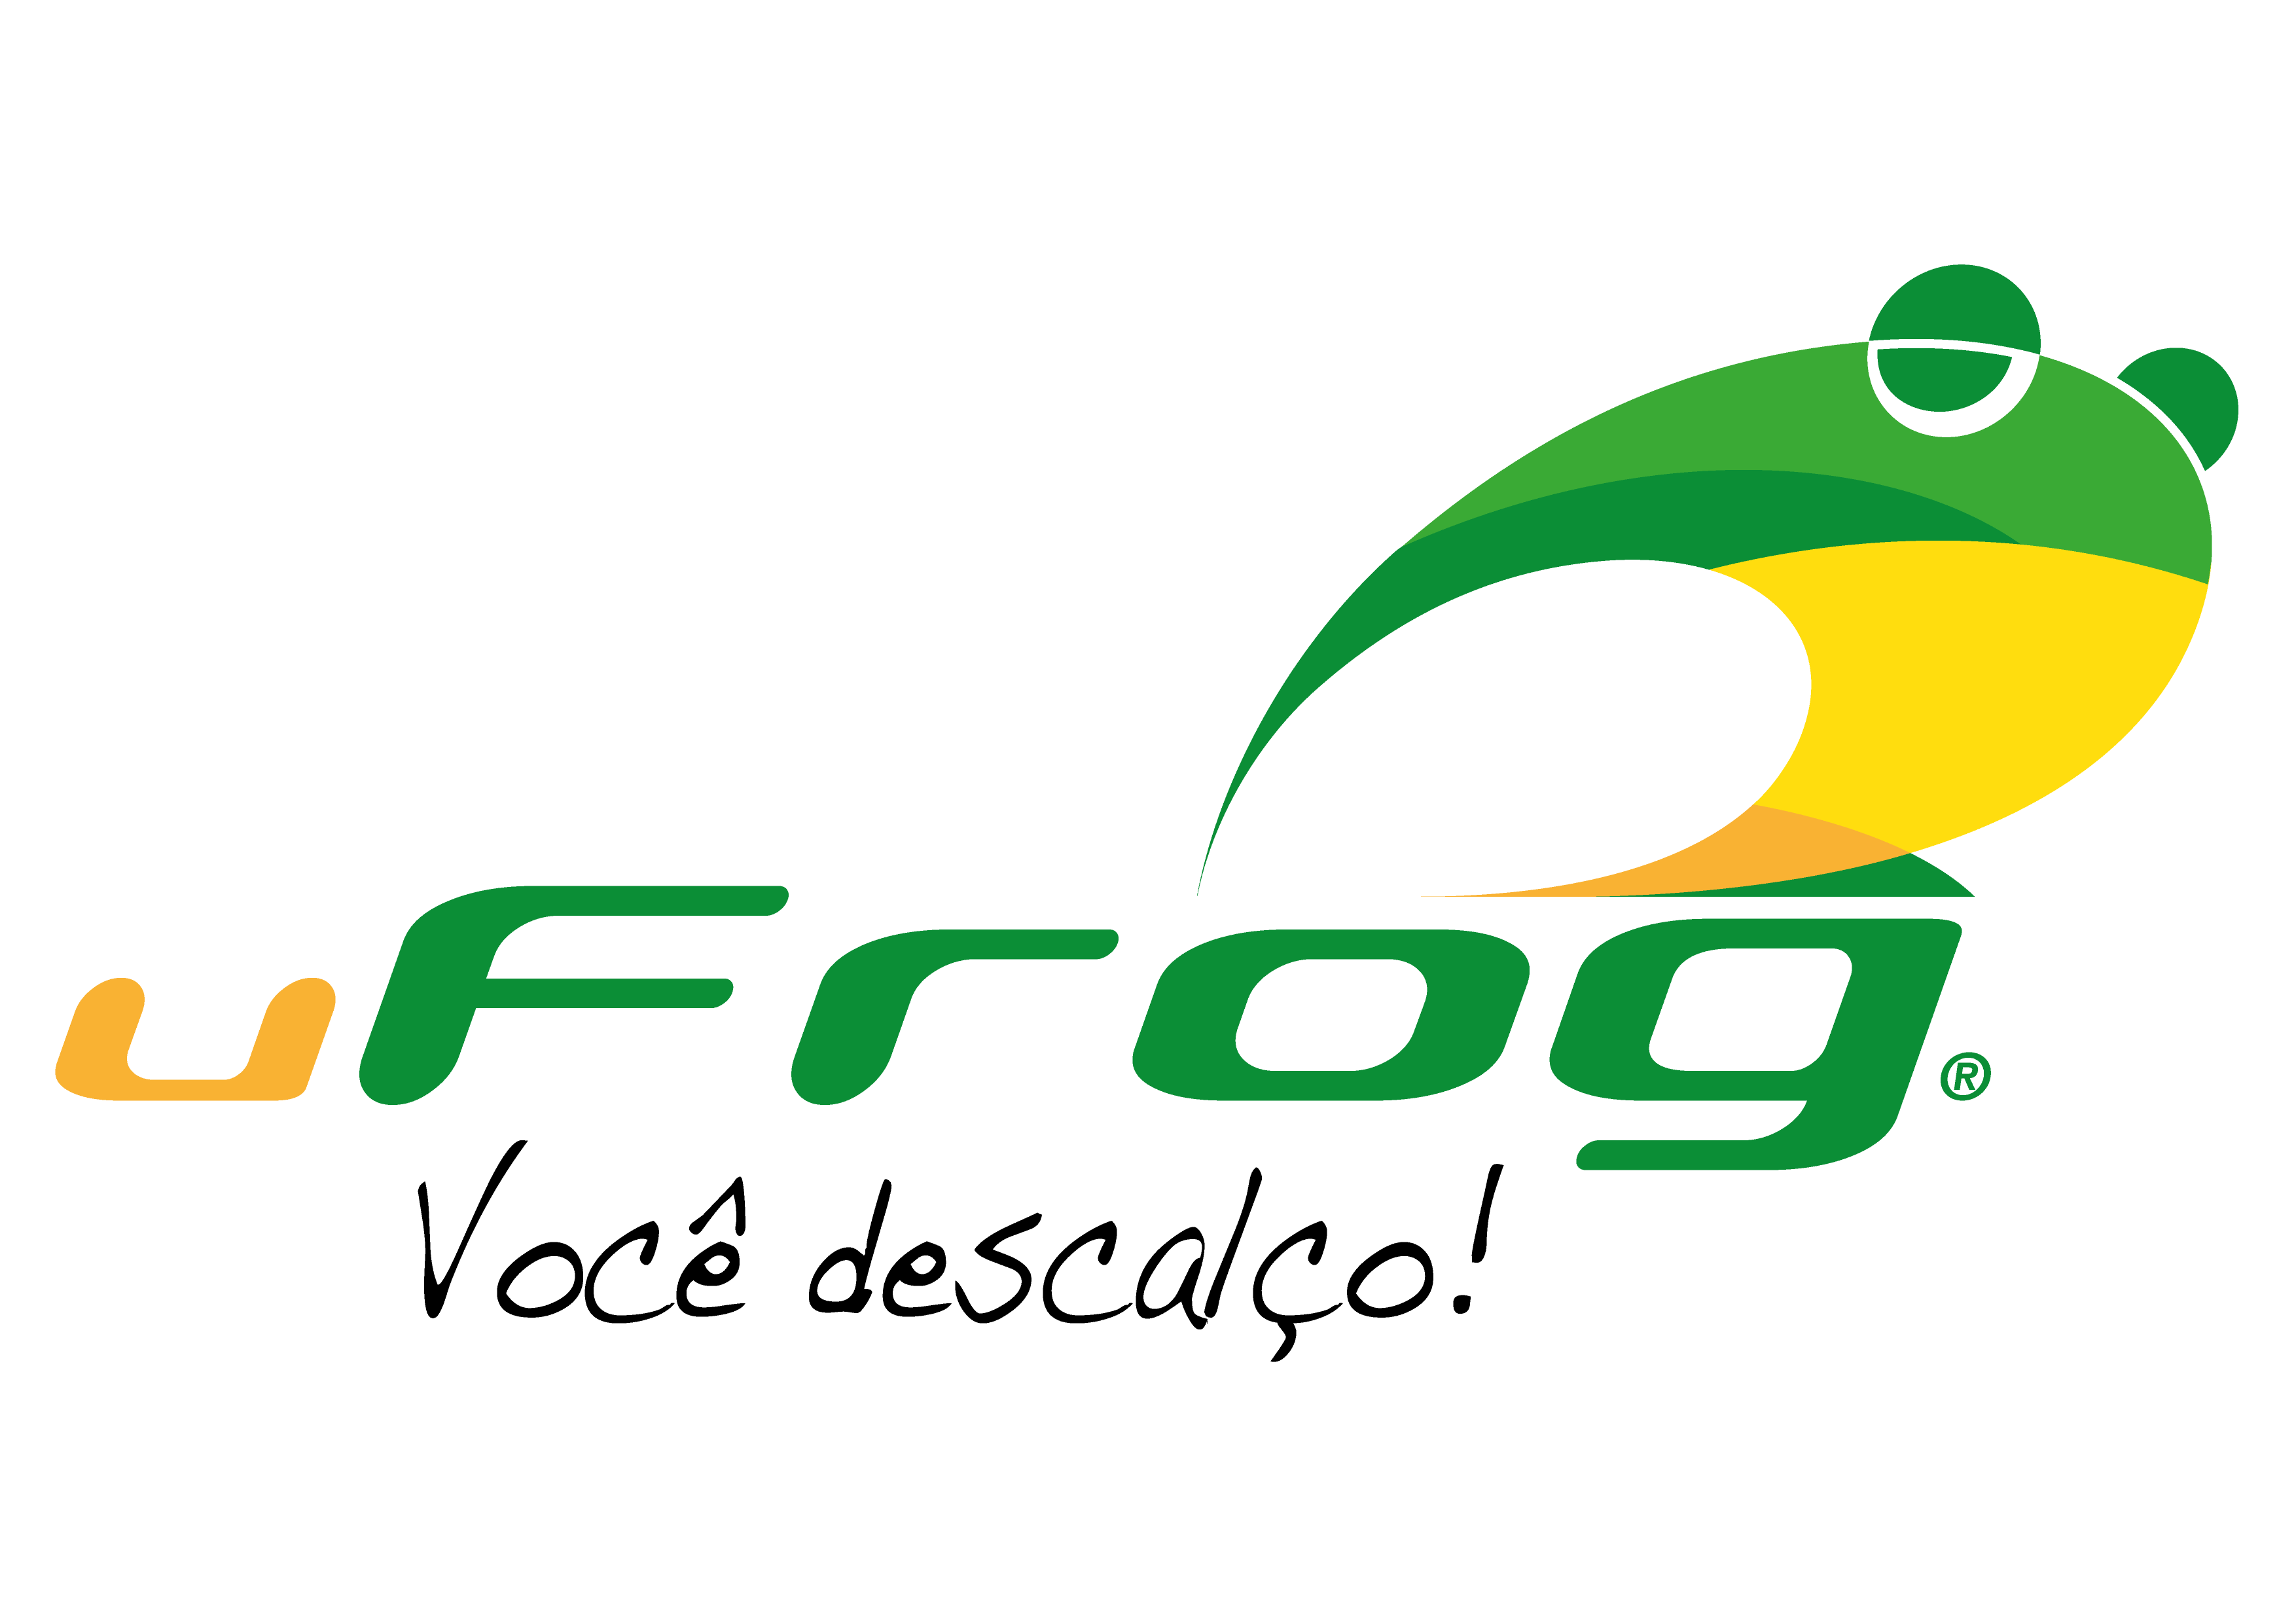 img/settings/logo-ufrog.png